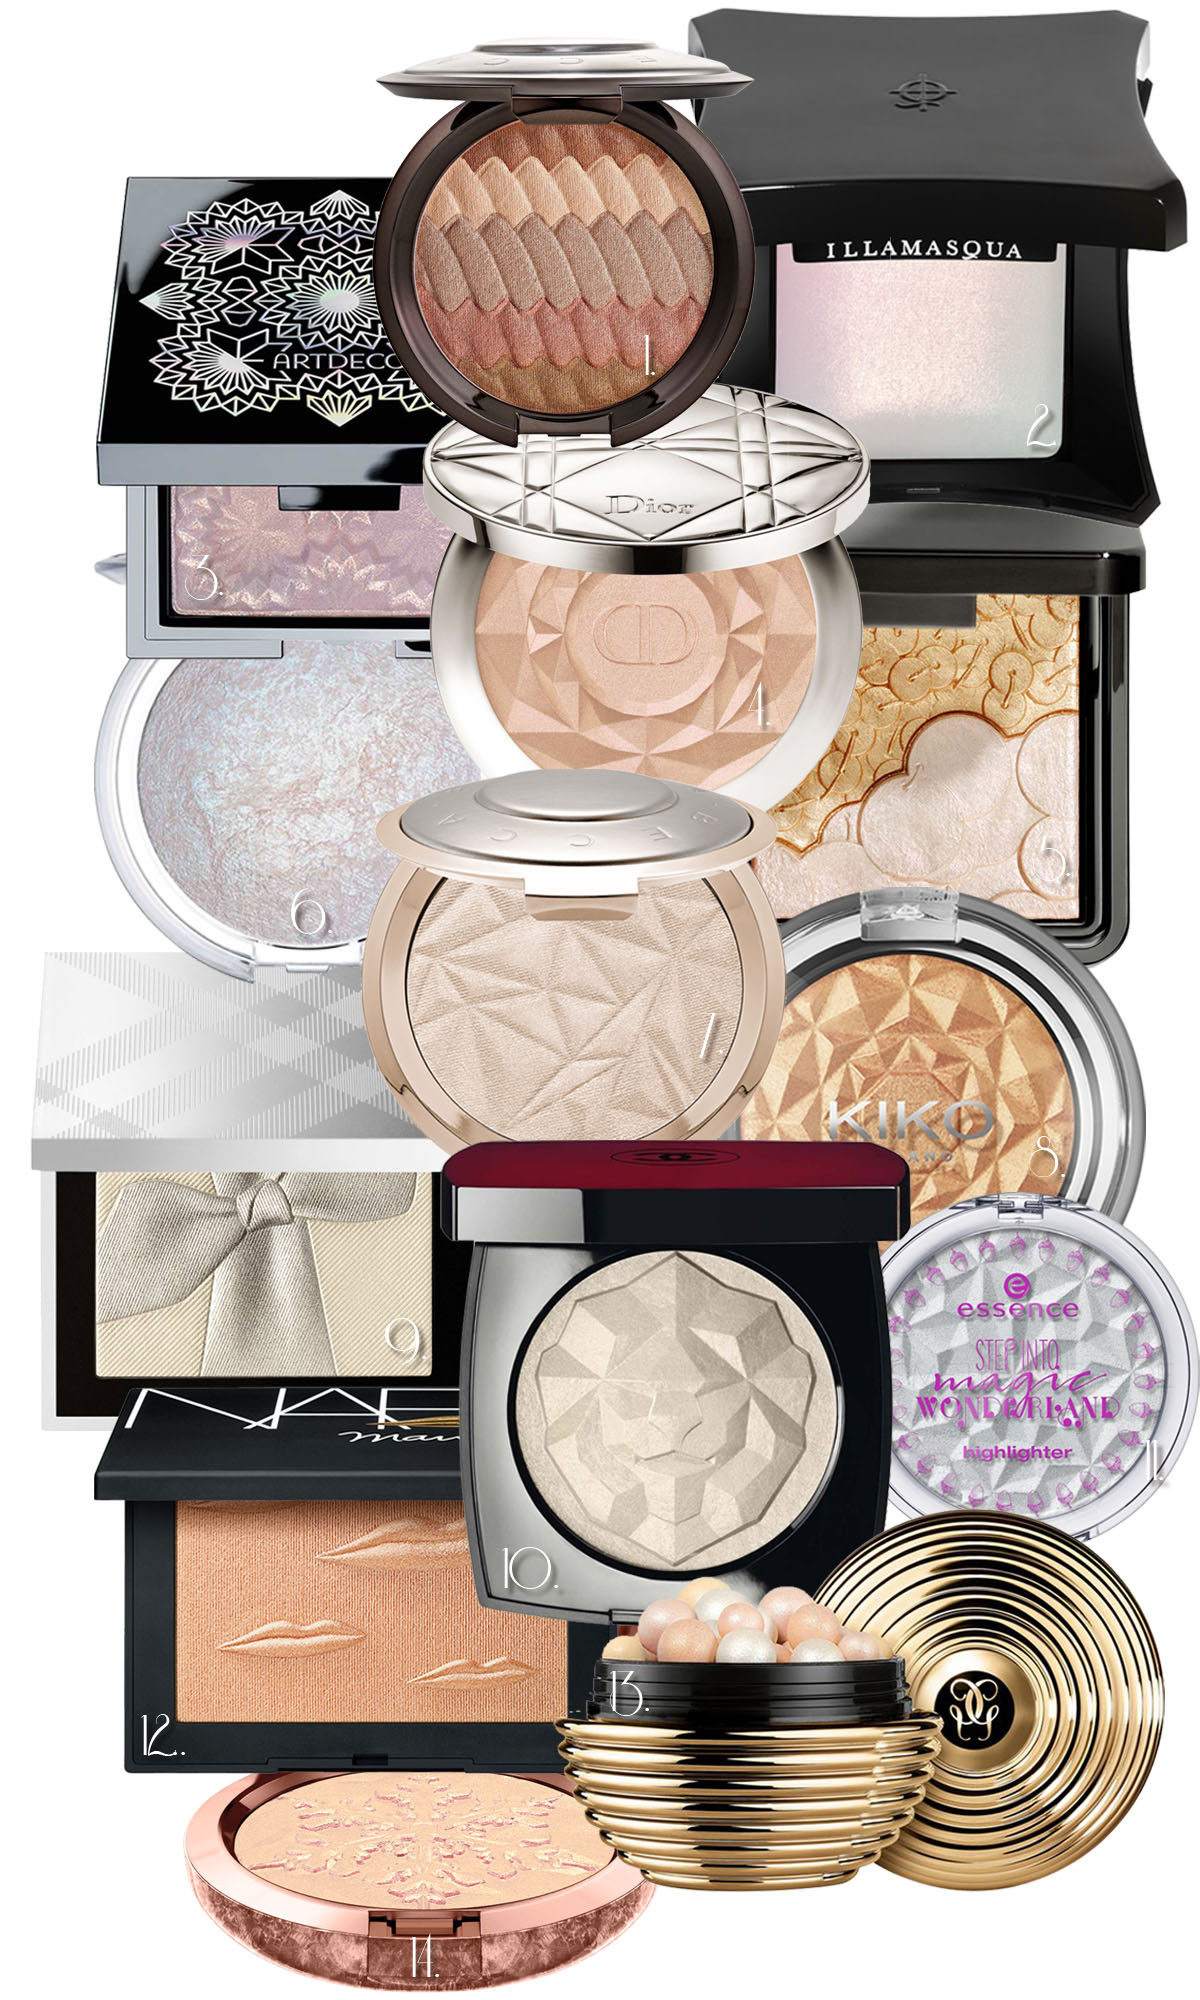 Highlighter Illuminating Powder Glow Puder Holiday 2017 Weihnachten Limited Edition Artdeco Becca Dior essence Chantecaille Illamasqua Guerlain Dior MAC Kiko Chanel NARS Burberry